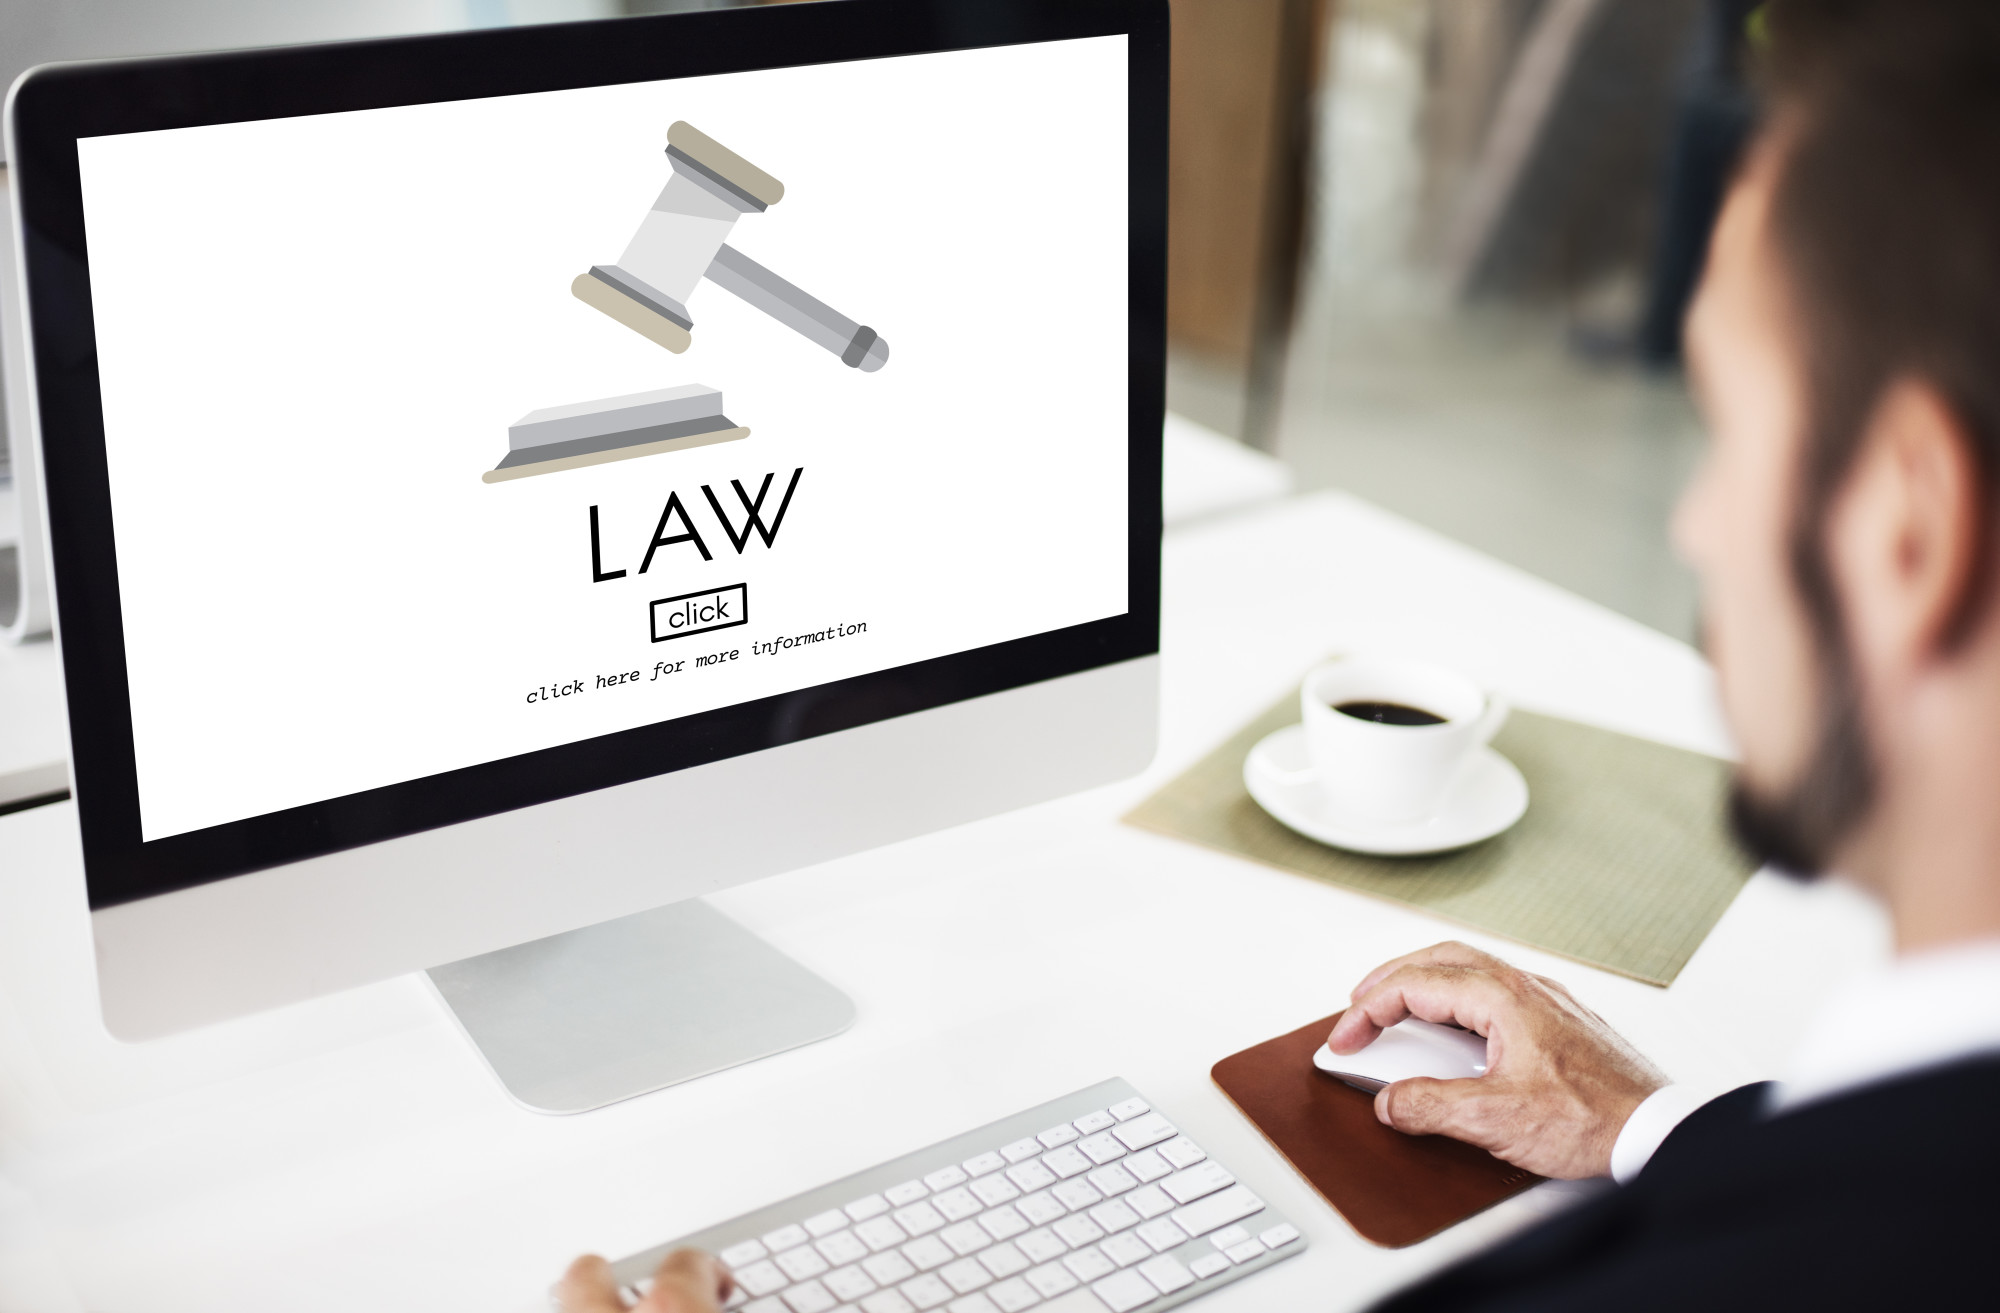 law website on computer